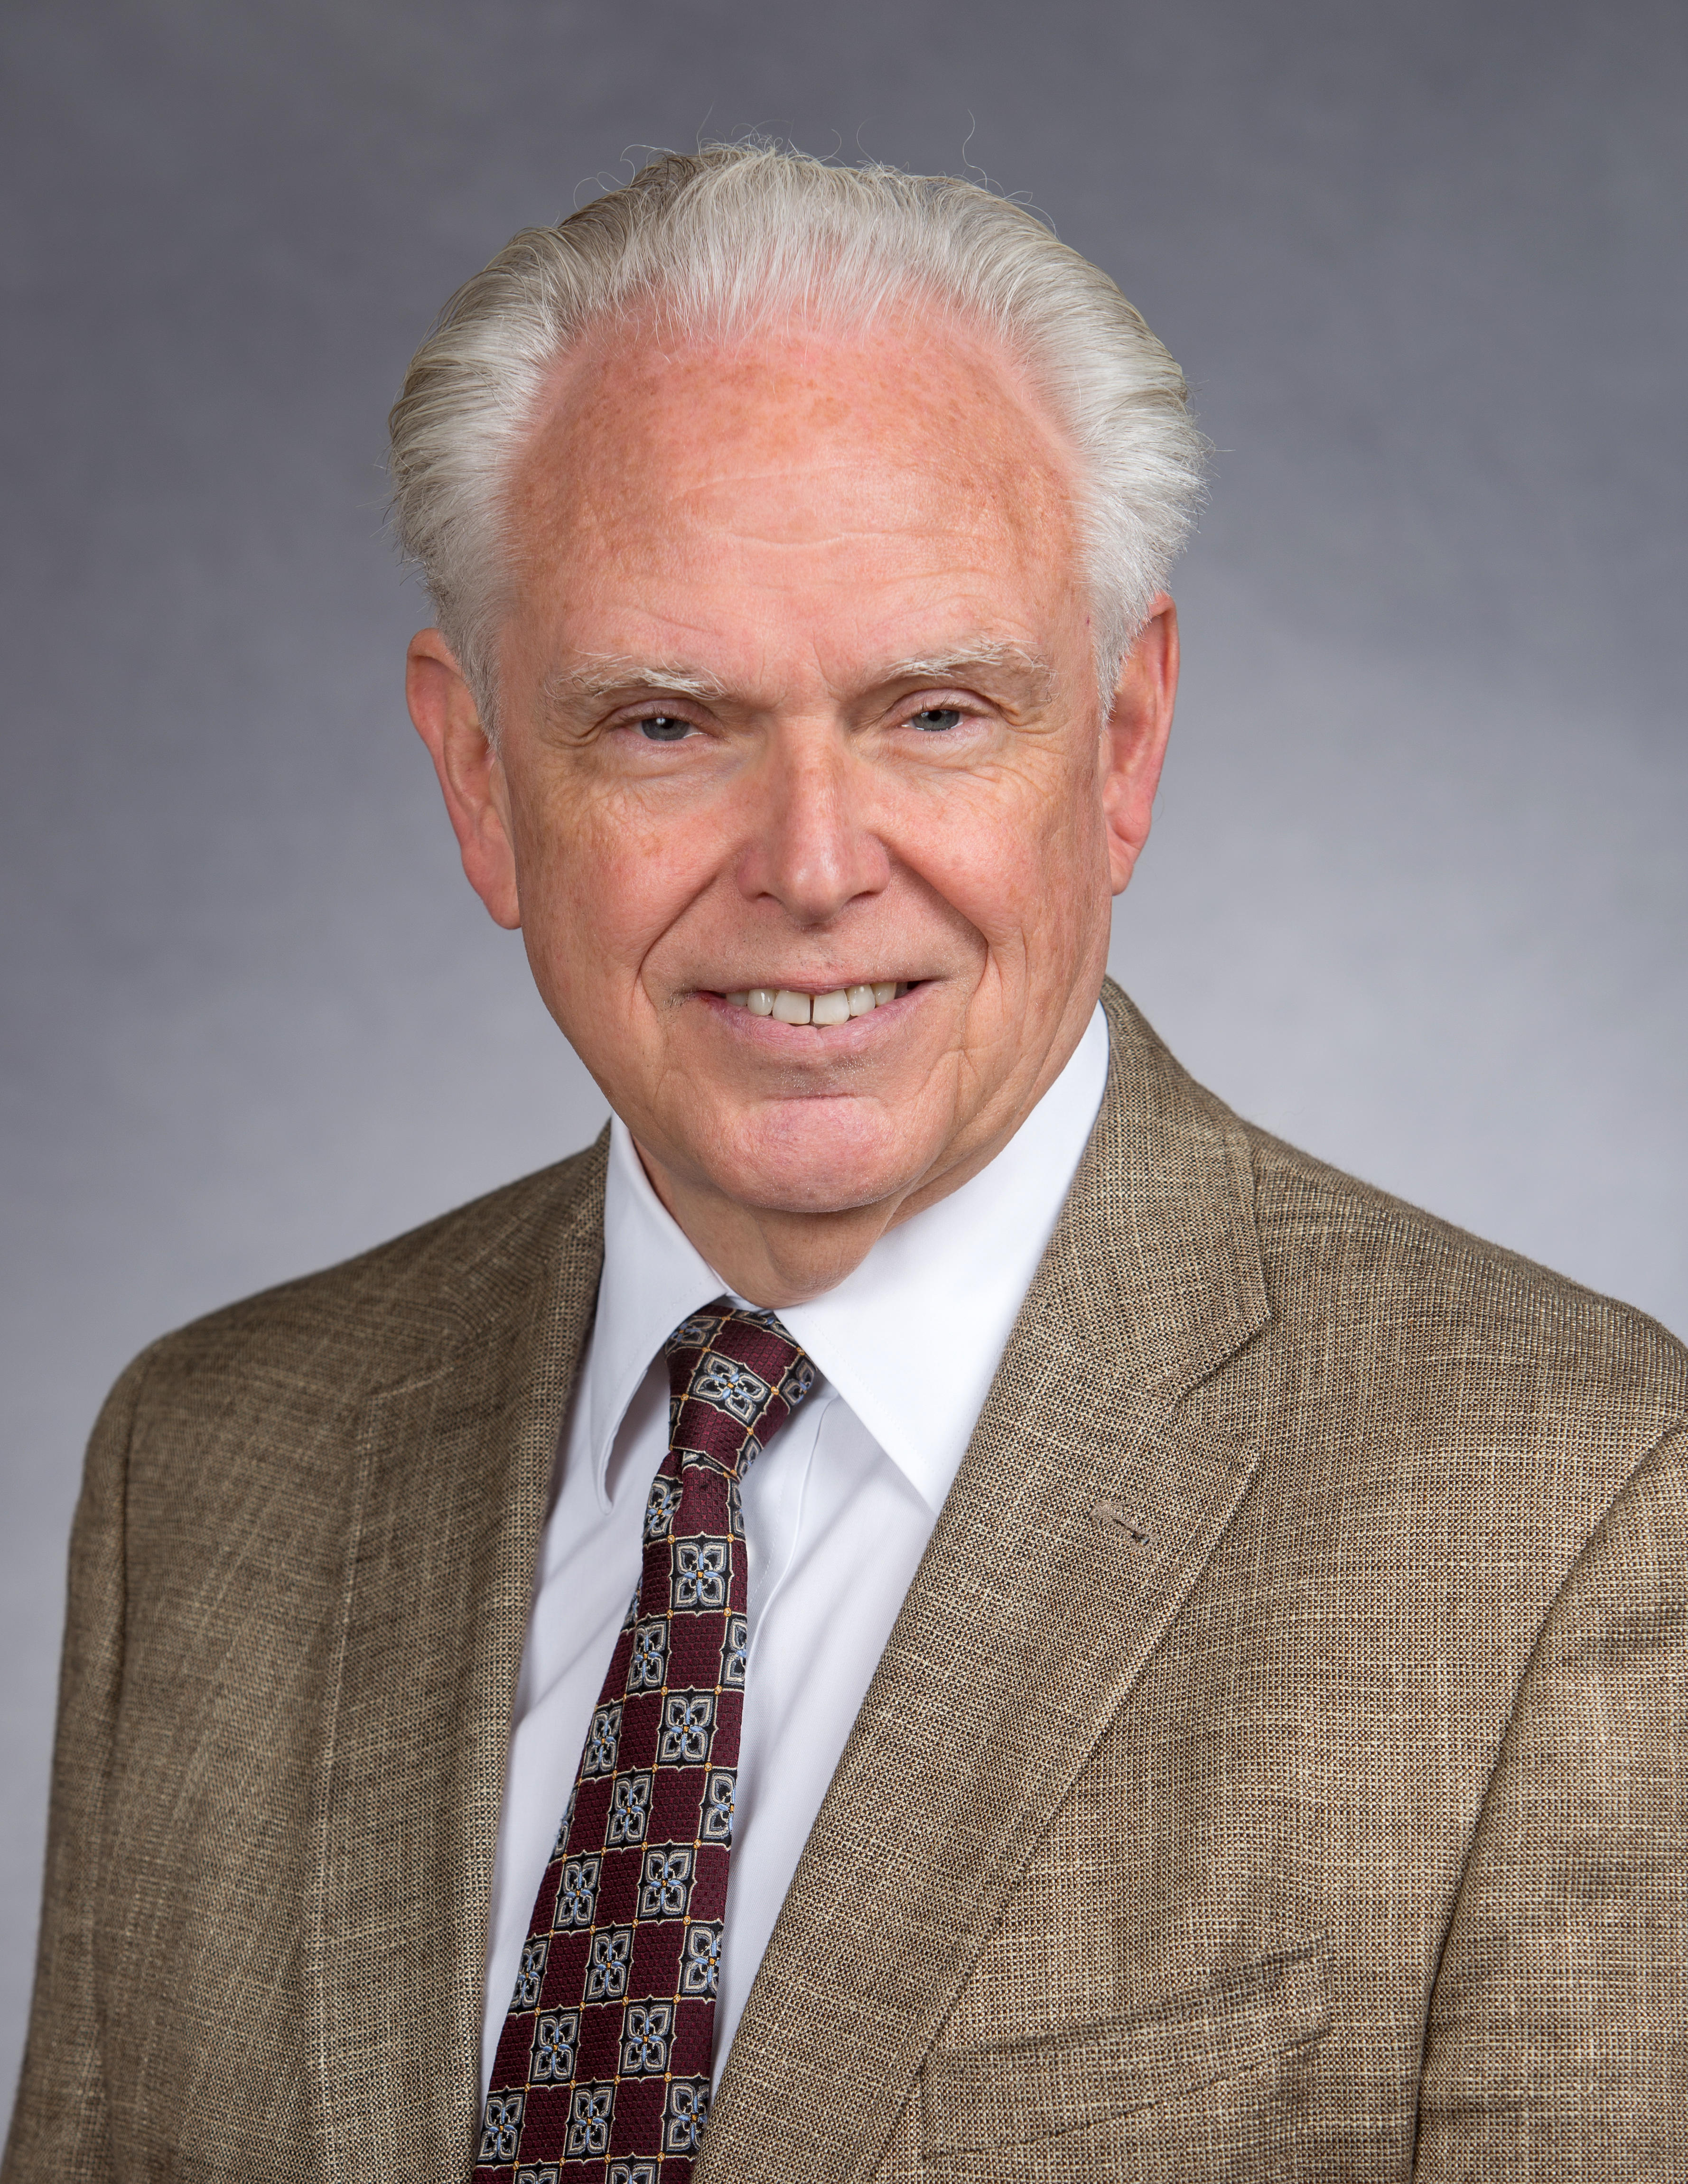 Image For Dr. William C. Mobley MD, PHD